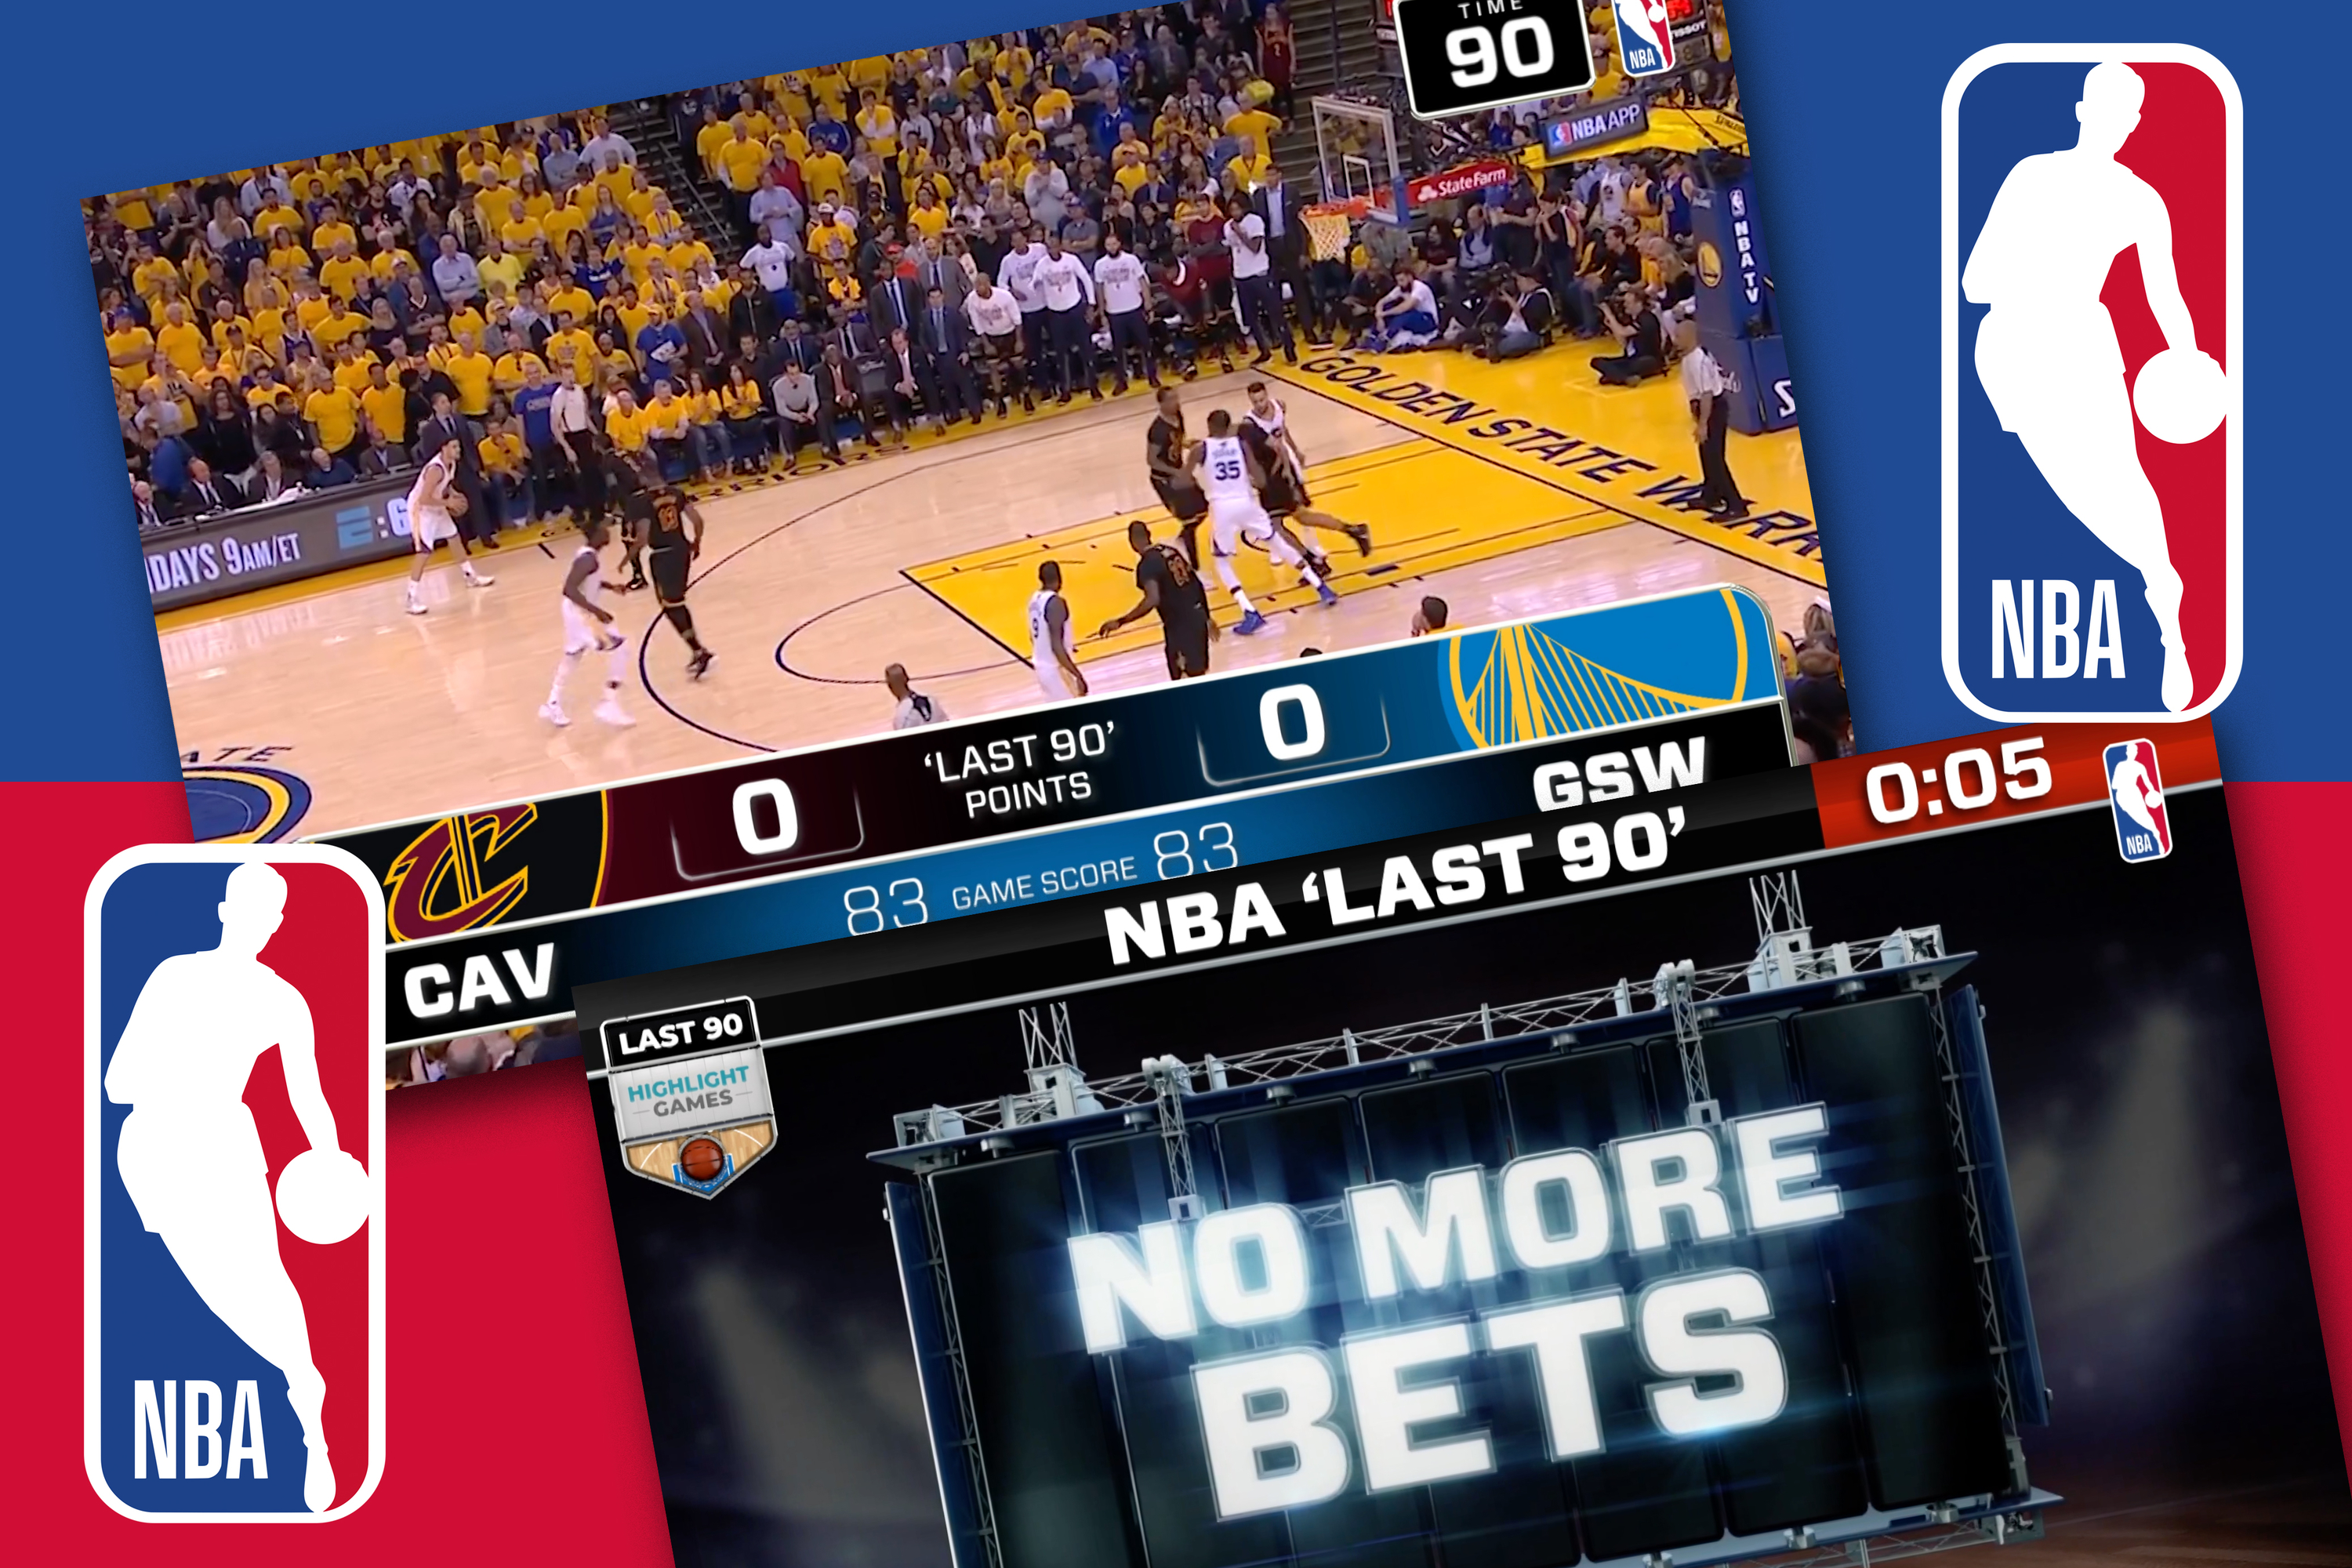 NBA Commissioner Adam Silver hopes fans will bet real money on fake games